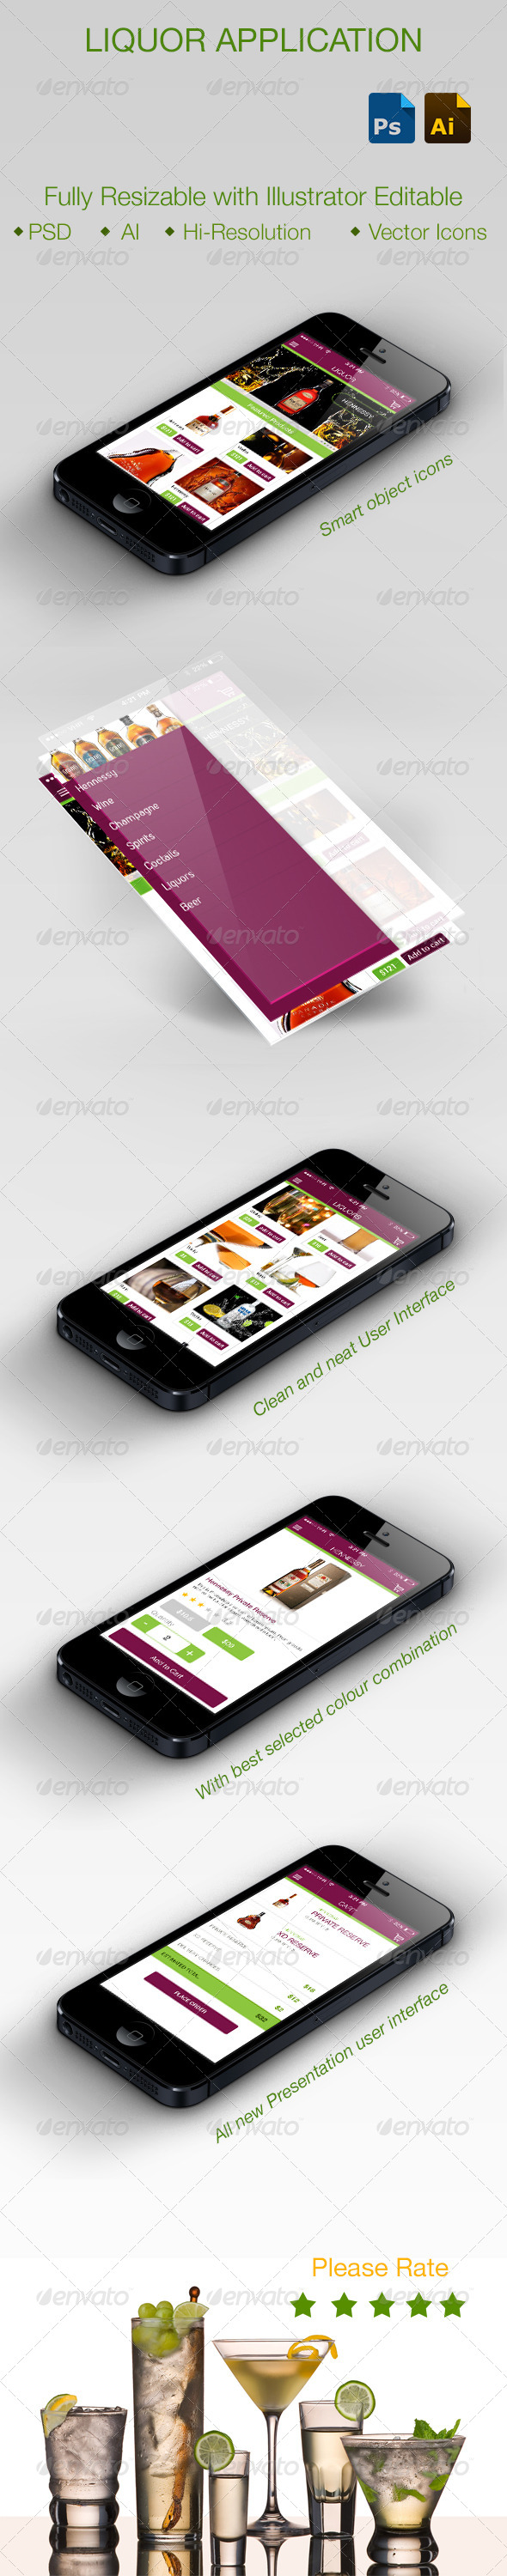 GraphicRiver Liquor Application 5767982